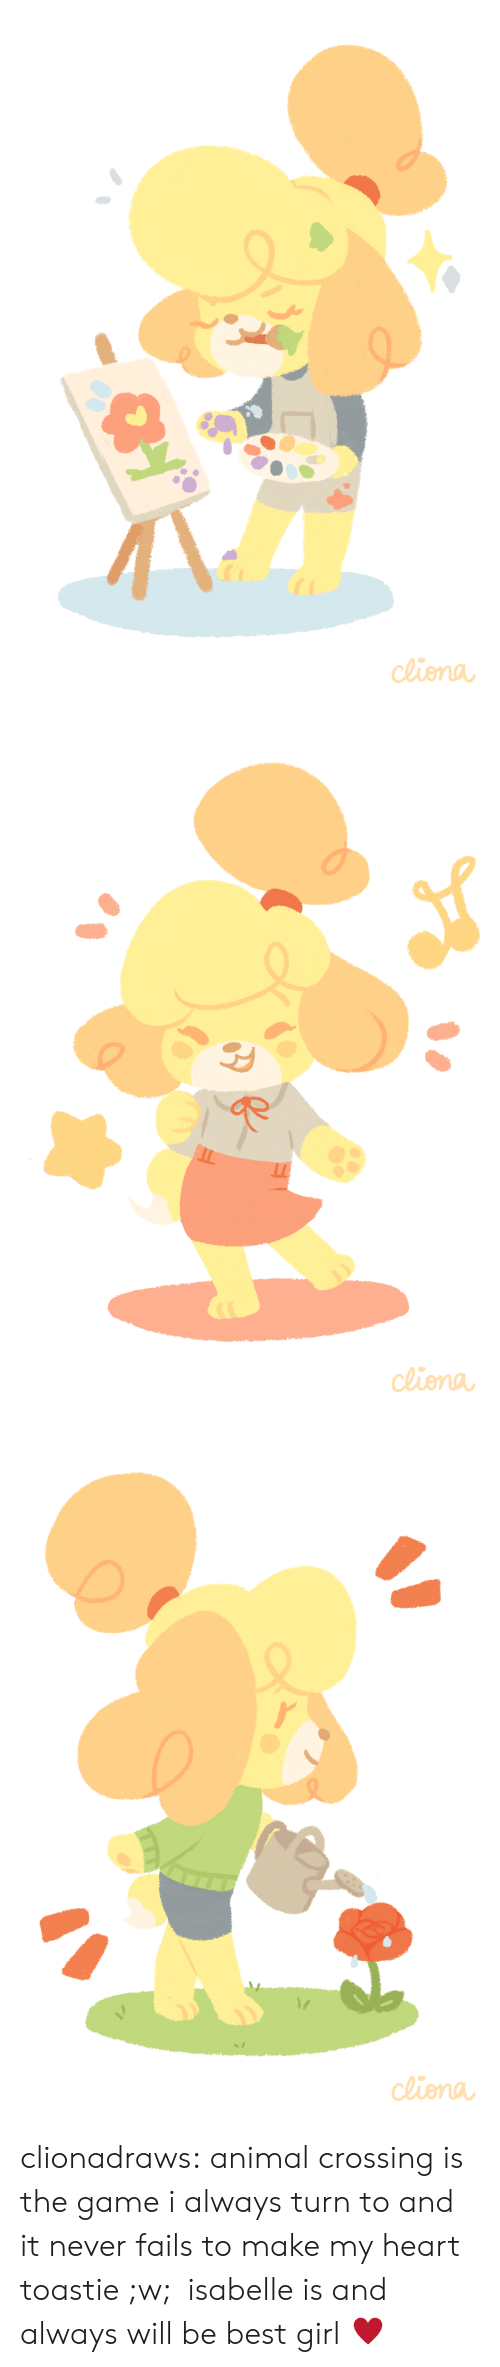 Target, The Game, and Tumblr: de clionadraws:   animal crossing is the game i always turn to and it never fails to make my heart toastie ;w; isabelle is and always will be best girl ♥